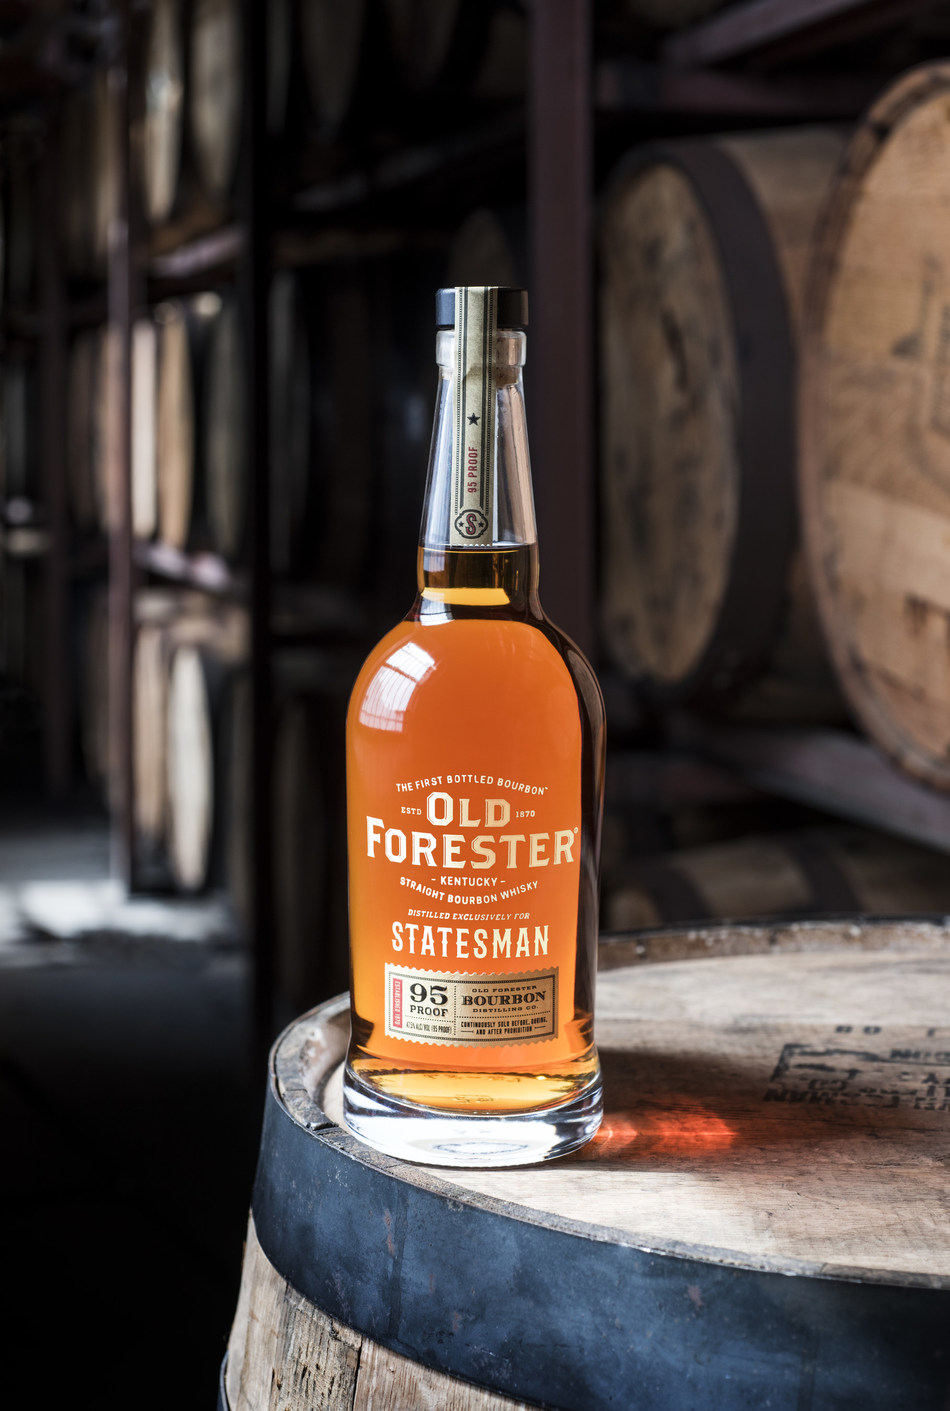 Old Forester Bourbon Featured in KINGSMAN: THE GOLDEN CIRCLE, Available August 2017